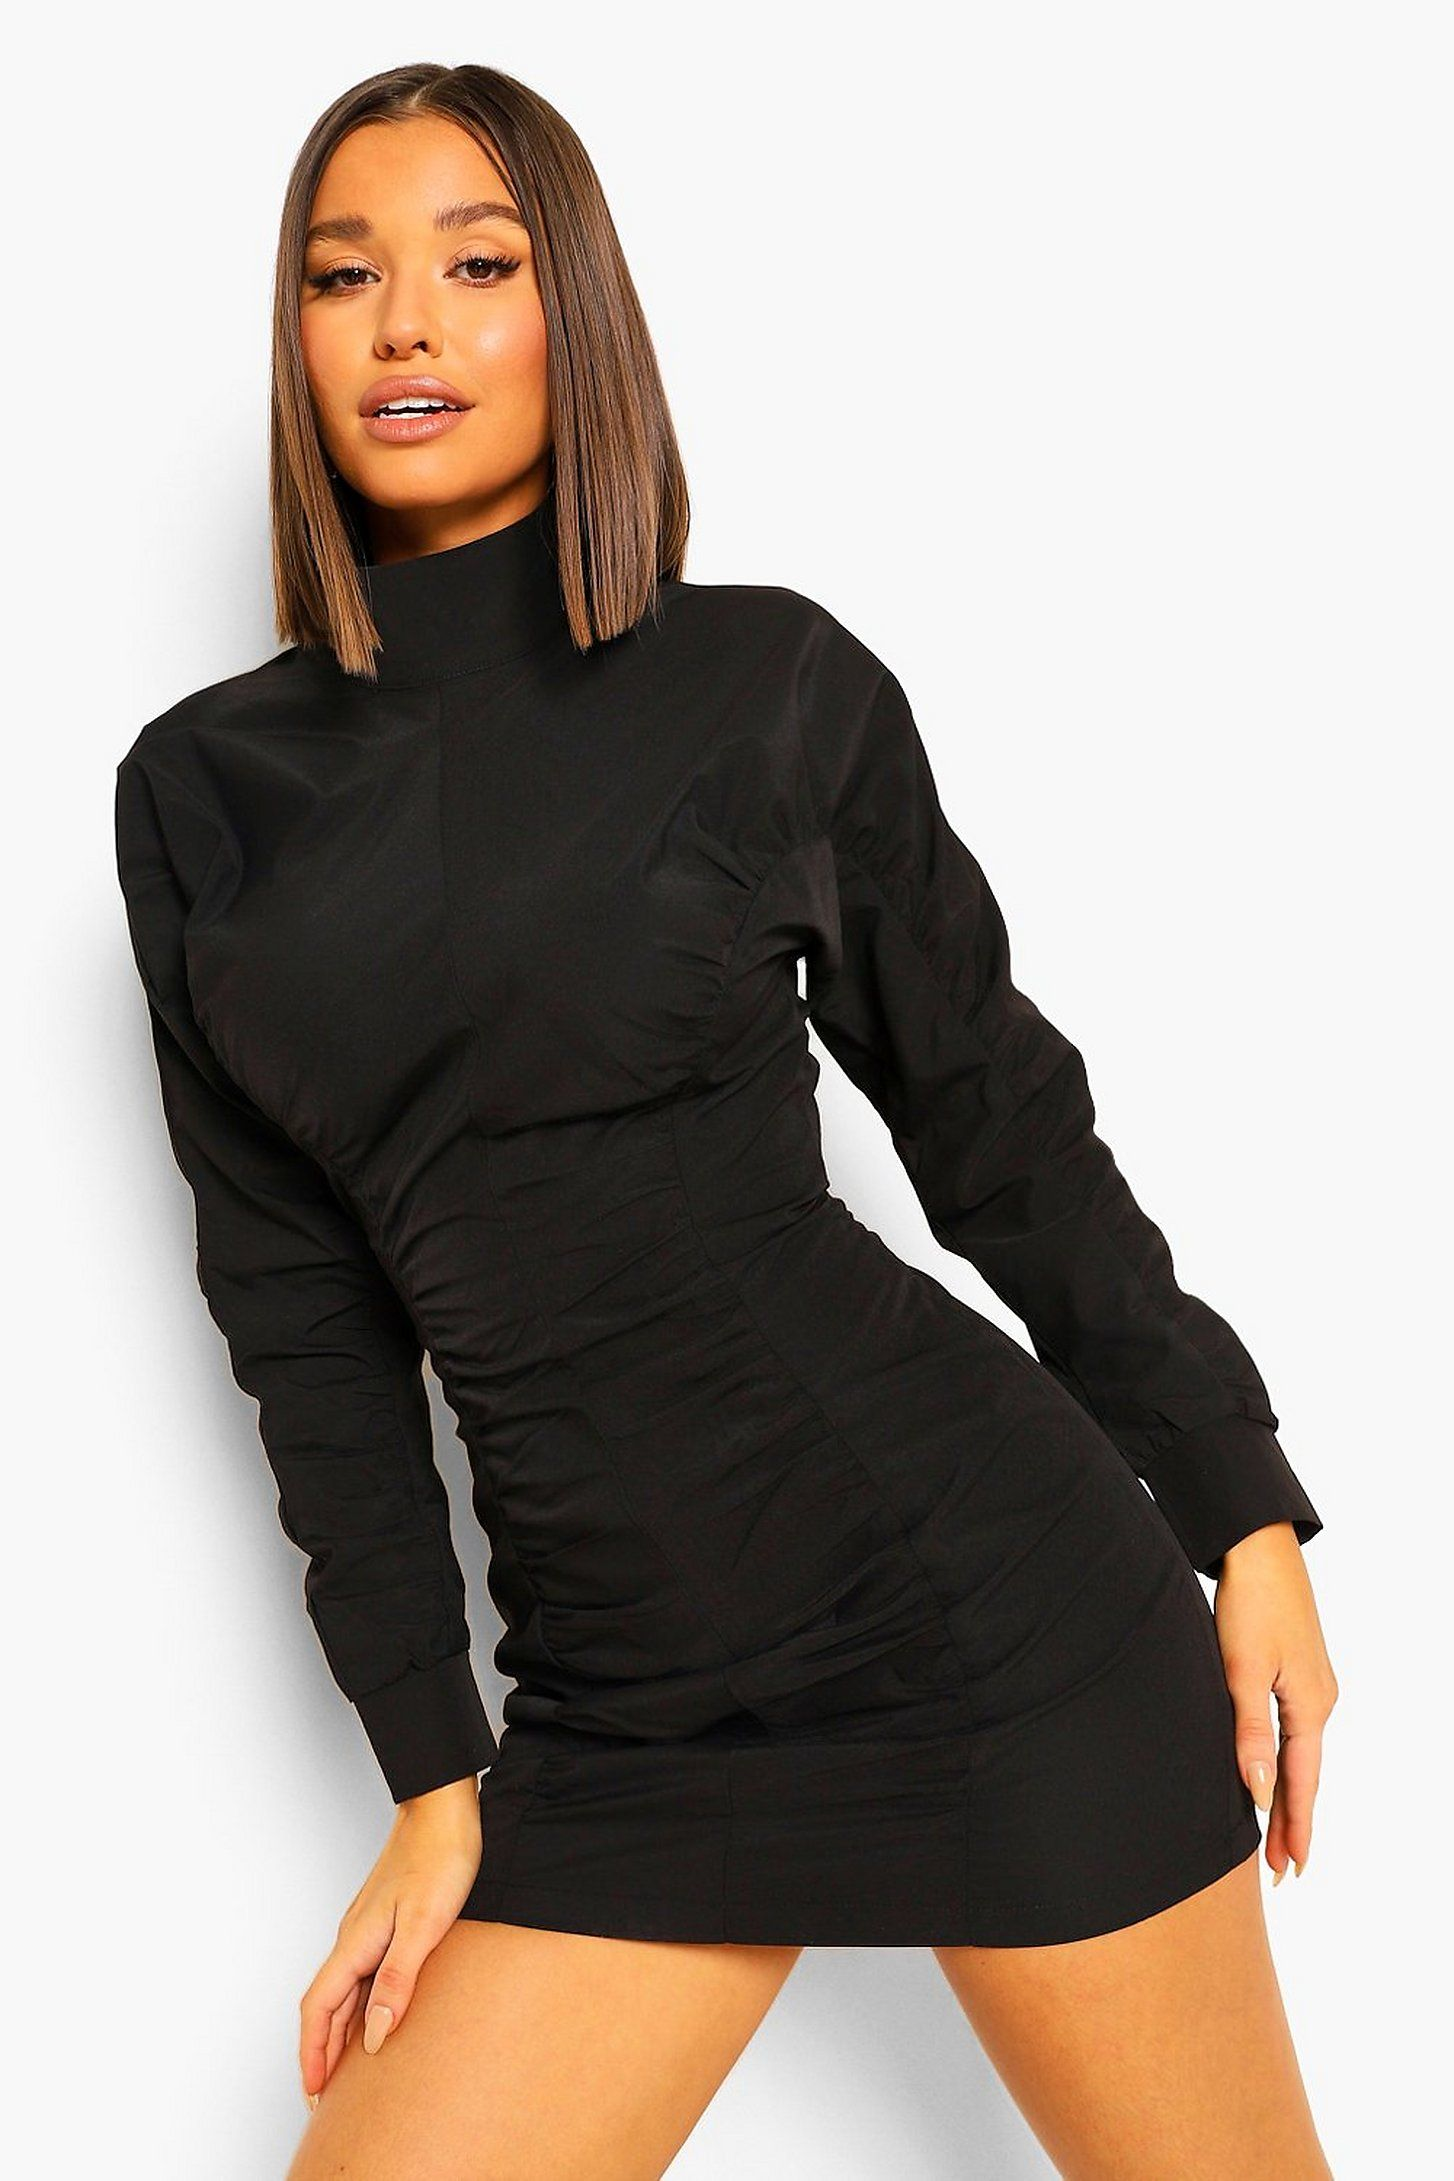 Women S High Neck Ruched Detail Long Sleeve Mini Dress Boohoo Uk Black Long Sleeve Mini Dress Super Short Mini Dress Long Sleeve High Neck Dress [ 2181 x 1454 Pixel ]